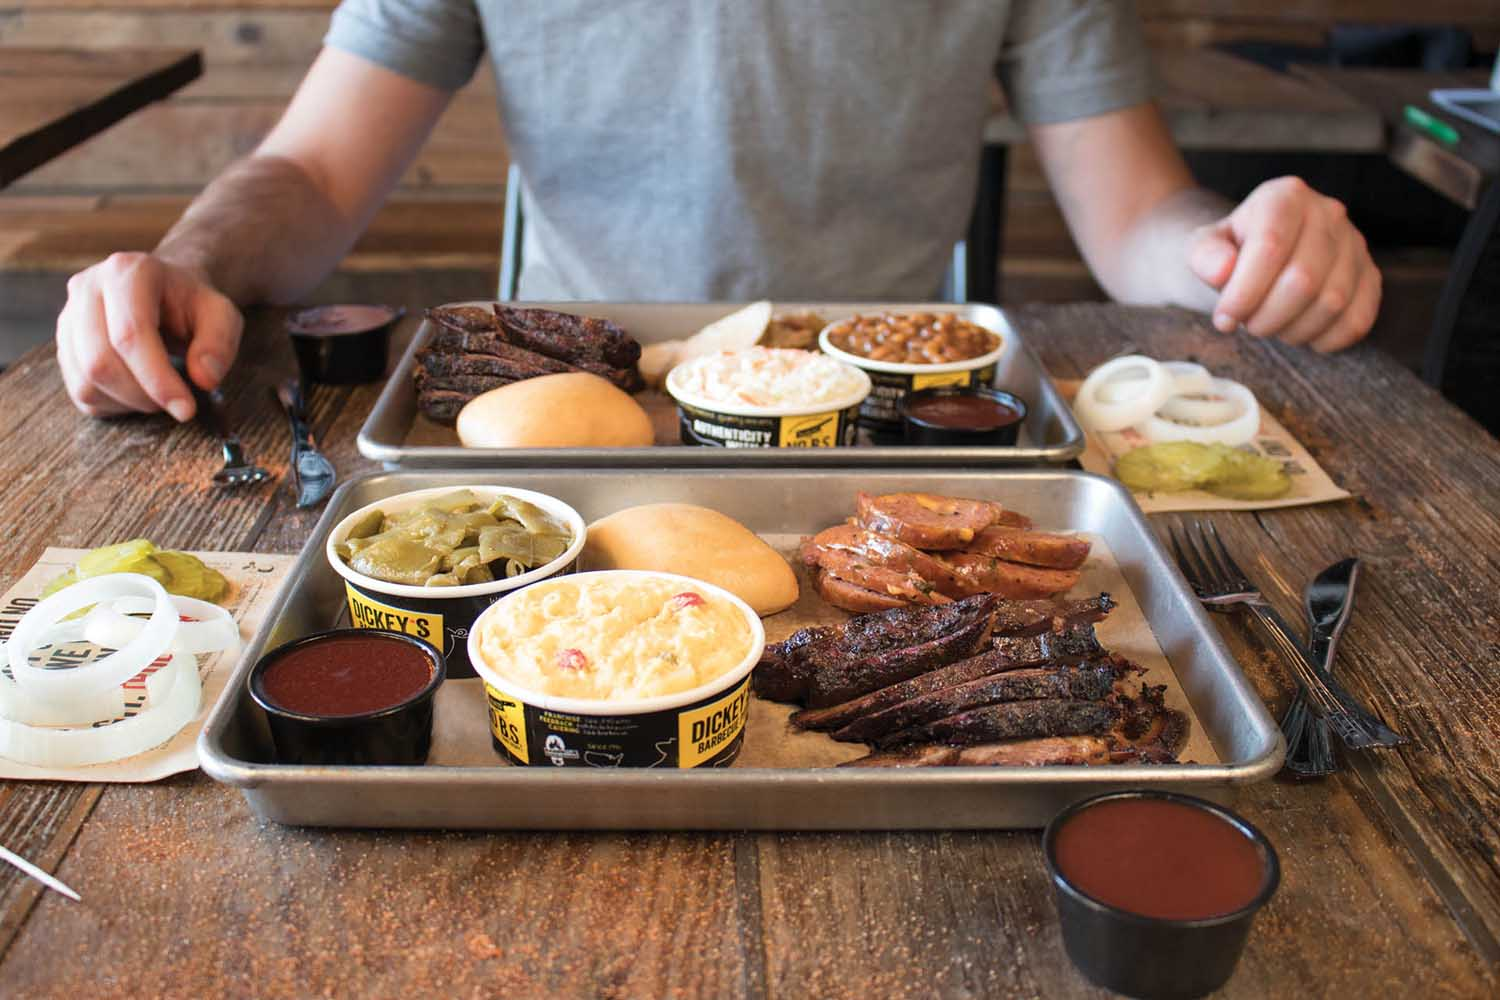 Franchising.com: Local Franchisee Brings Dickey's Barbecue Pit to Lutz